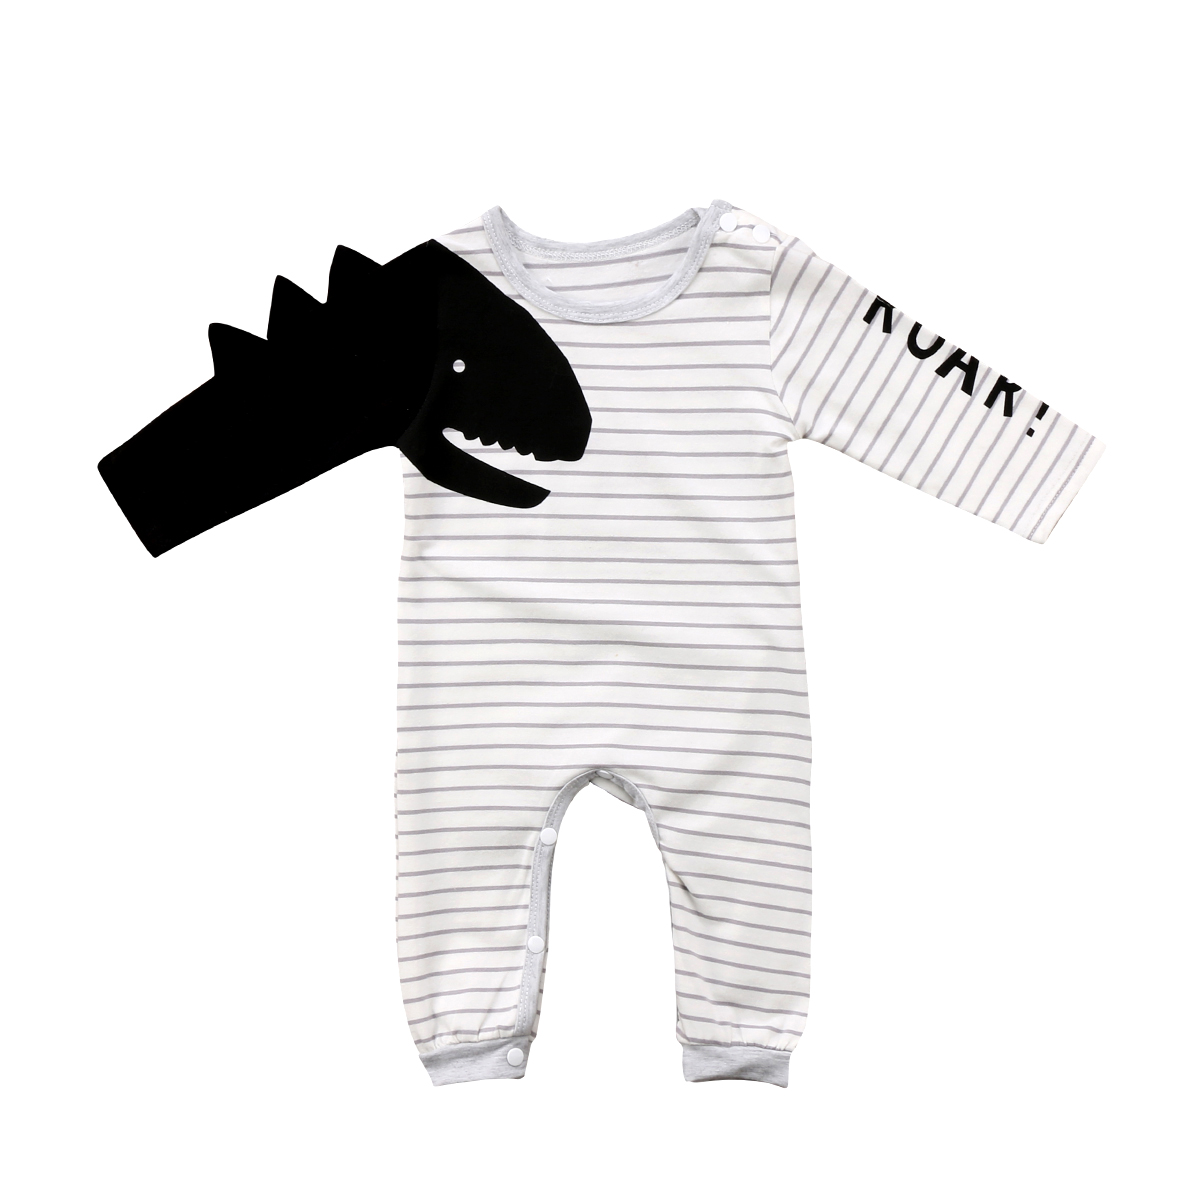 Newborn Baby Boy Girls Clothing Striped Romper Long Sleeve Cotton Cute Animals Jumpsuit Outfits Clothes baby girls butterfly long sleeve romper newborn kids 2017 new arrival button jumpsuit outfits clothing for newborns age 3m 3y